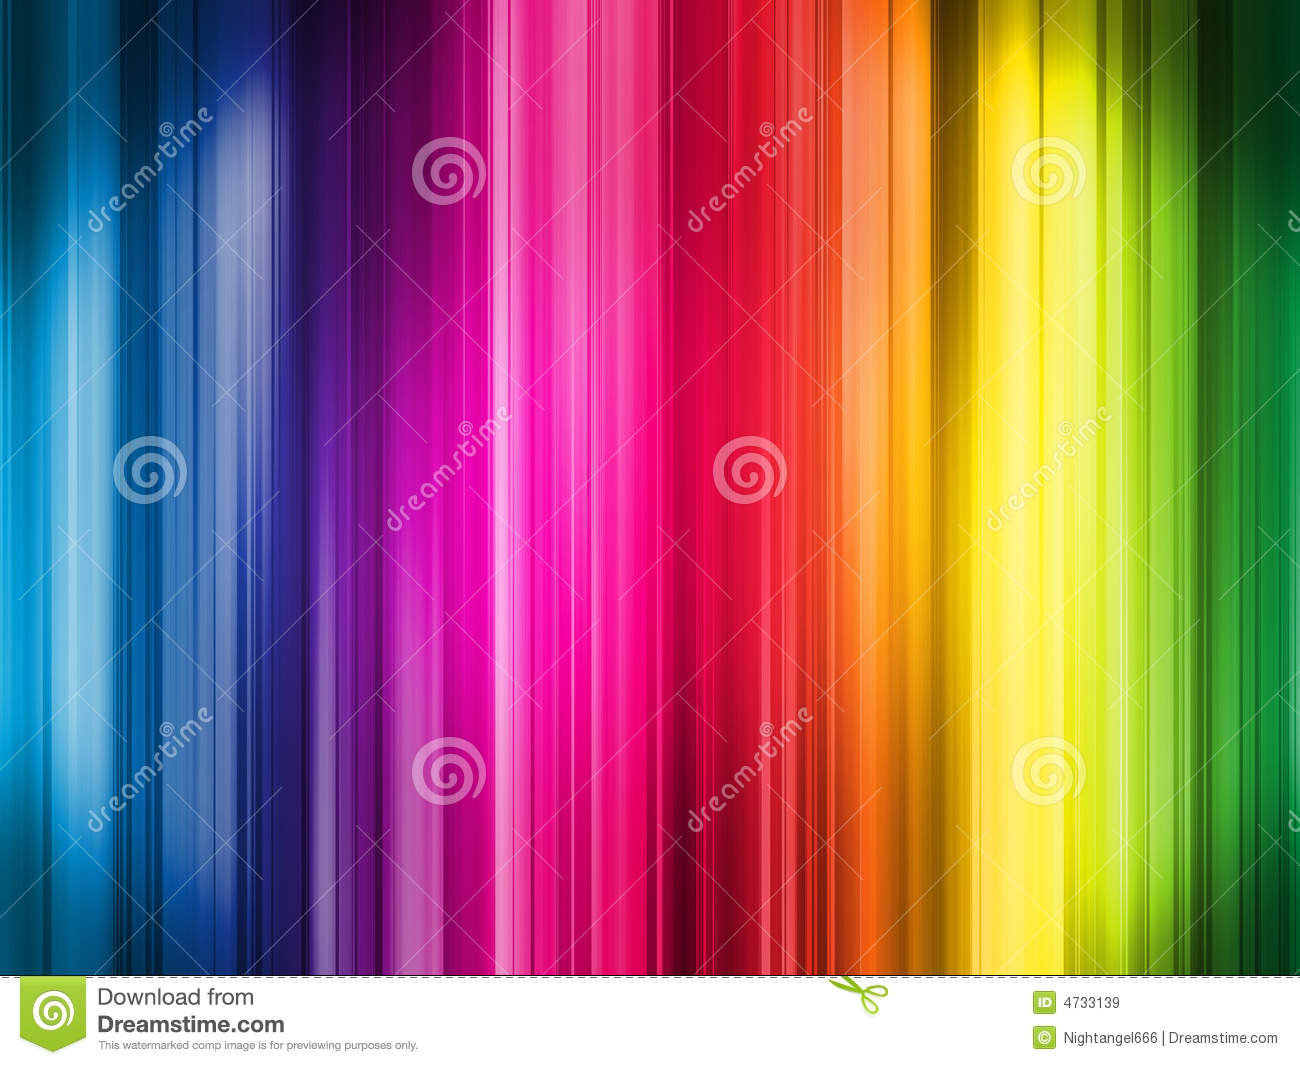 Straight Line Artrage : Straight line background stock illustration image of move